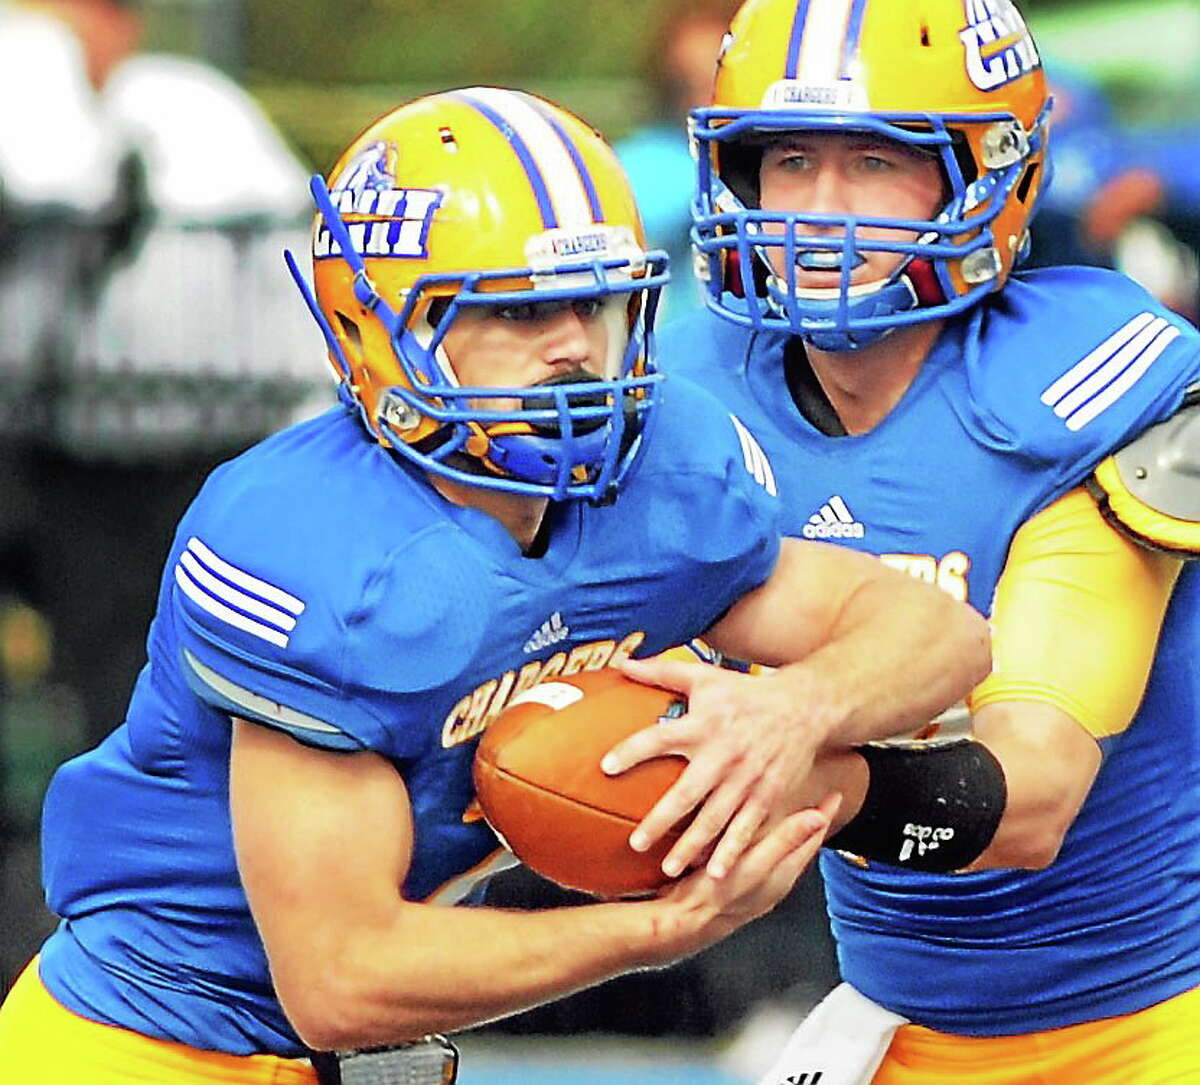 New Haven running back Mike DeCaro takes the handoff from Chargers quarterback Ronnie Nelson during the Chargers' Oct. 19, 2013, game against Stonehill.